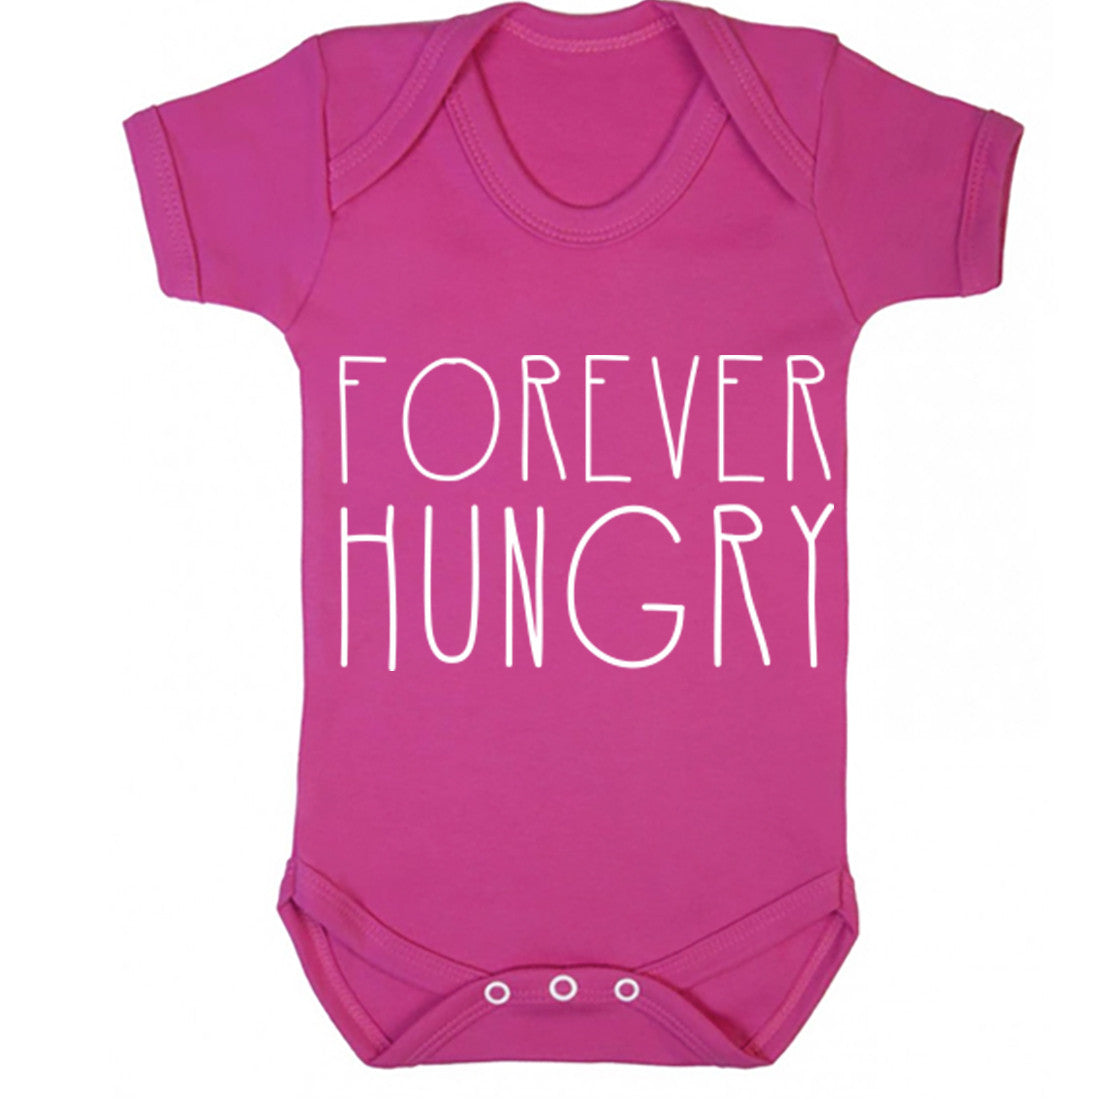 Forever Hungry Baby Vest K0172